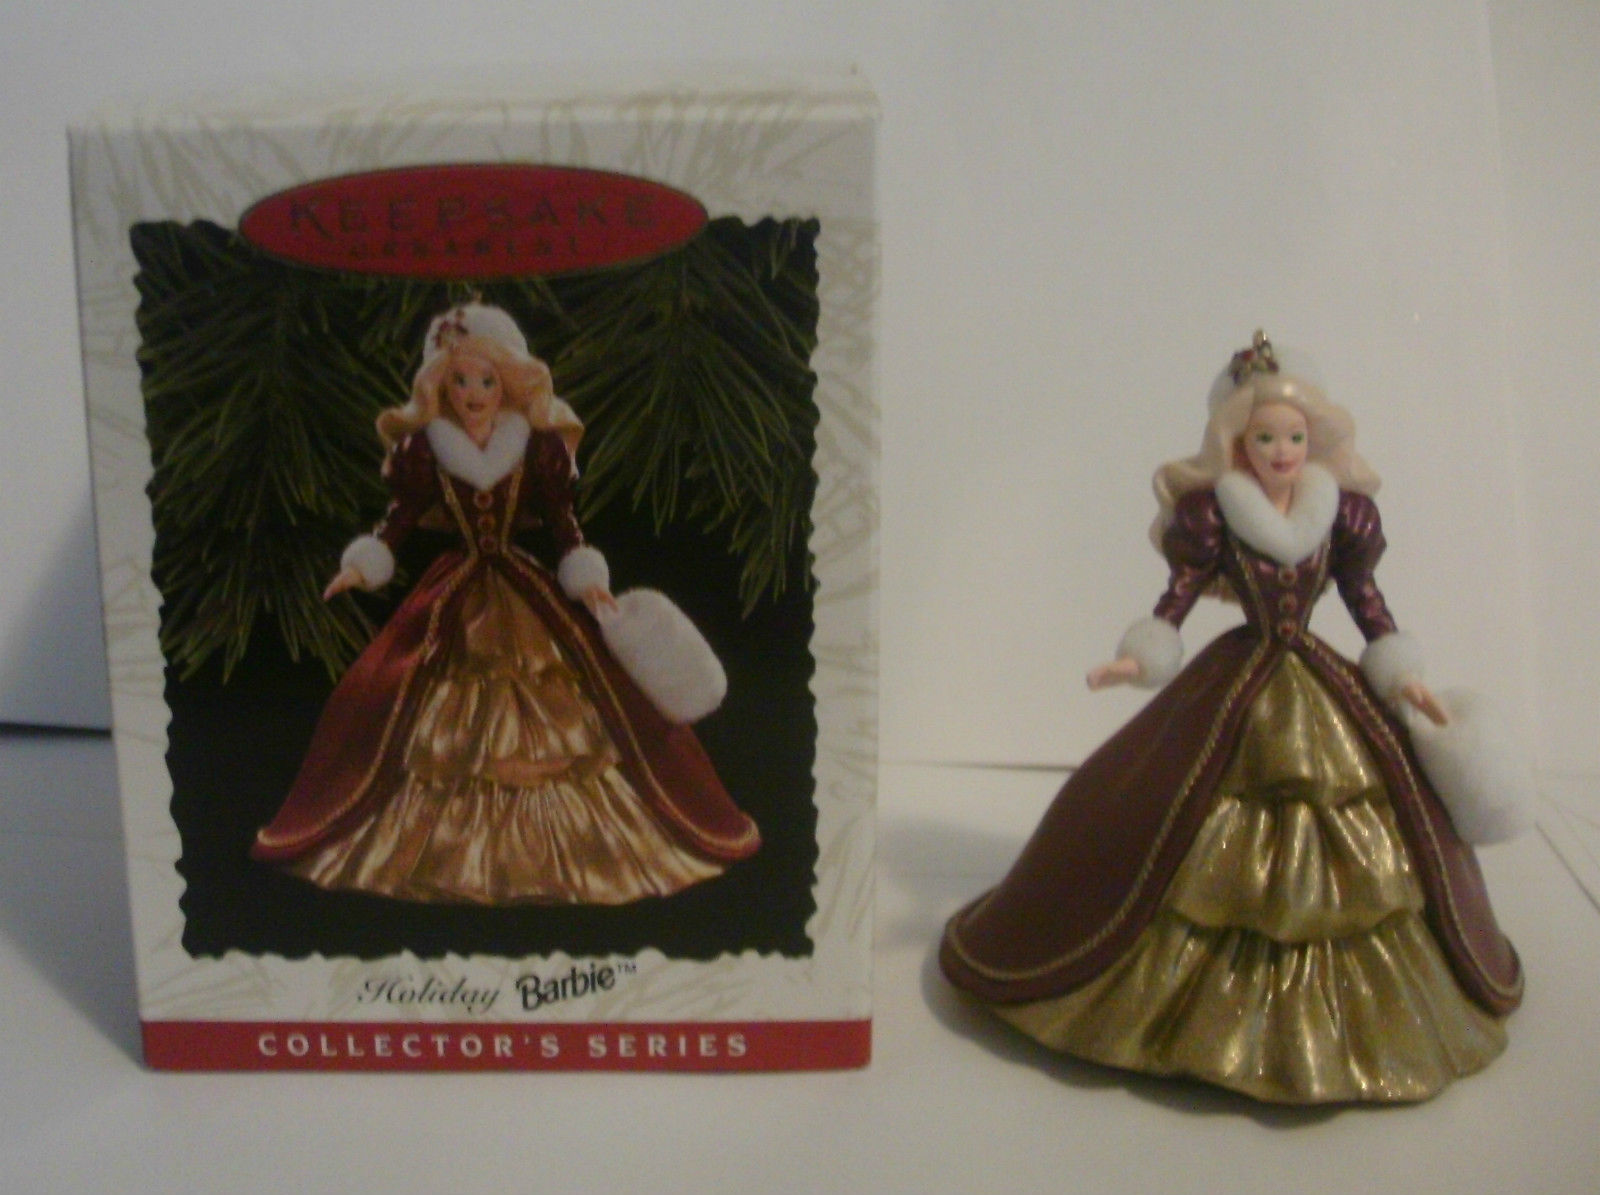 1996 Hallmark - HOLIDAY BARBIE ornament Collectors Series